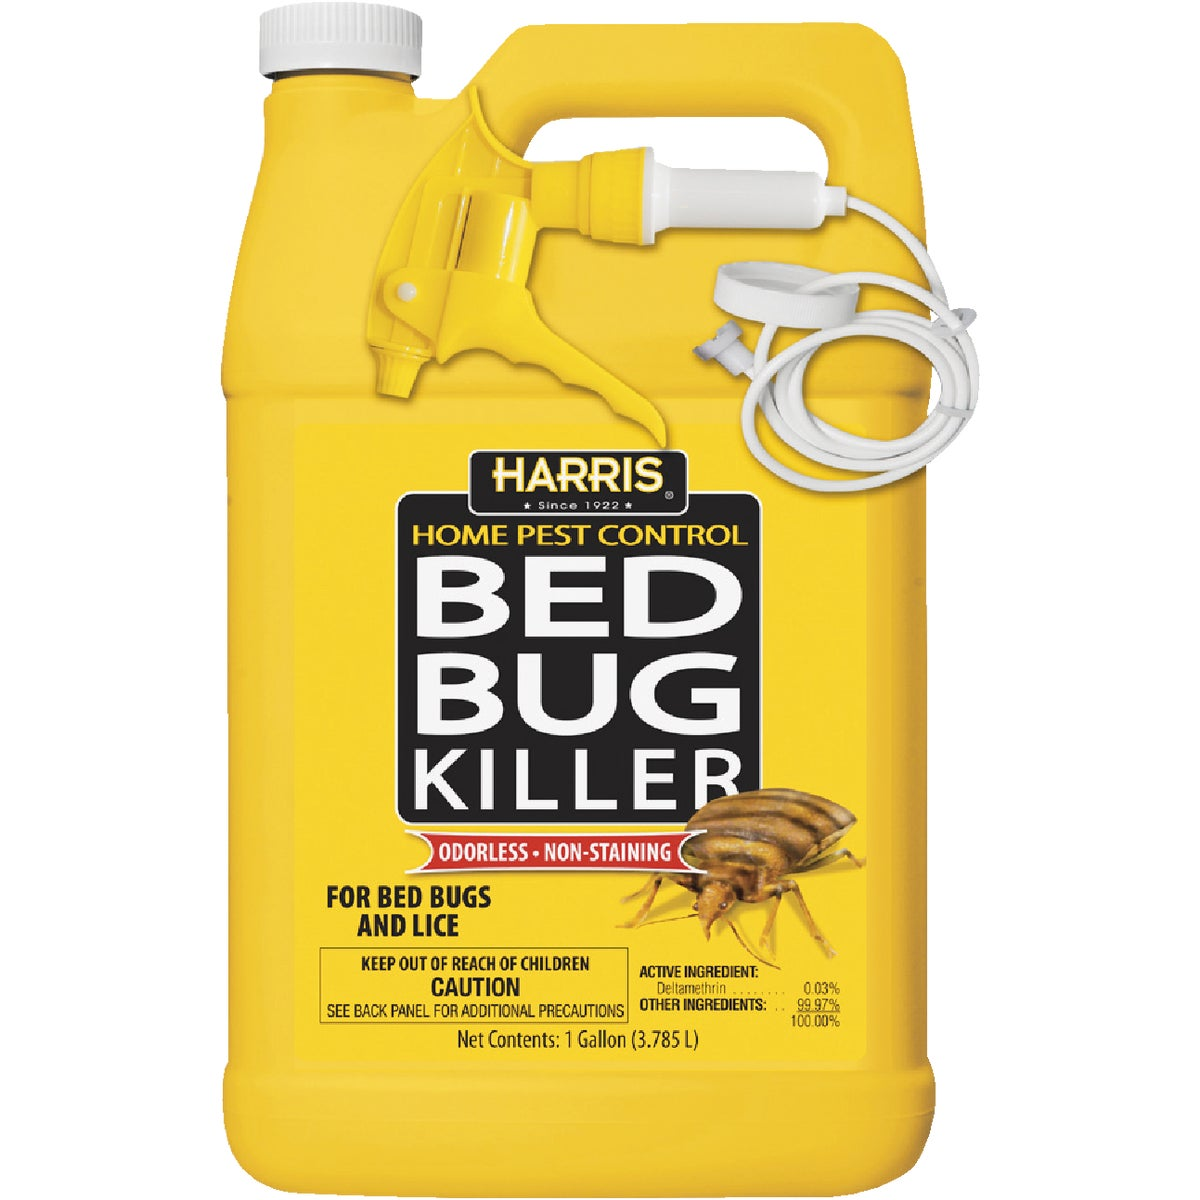 P. F. Harris Mfg. 1G BED BUG KILLER HBB-128